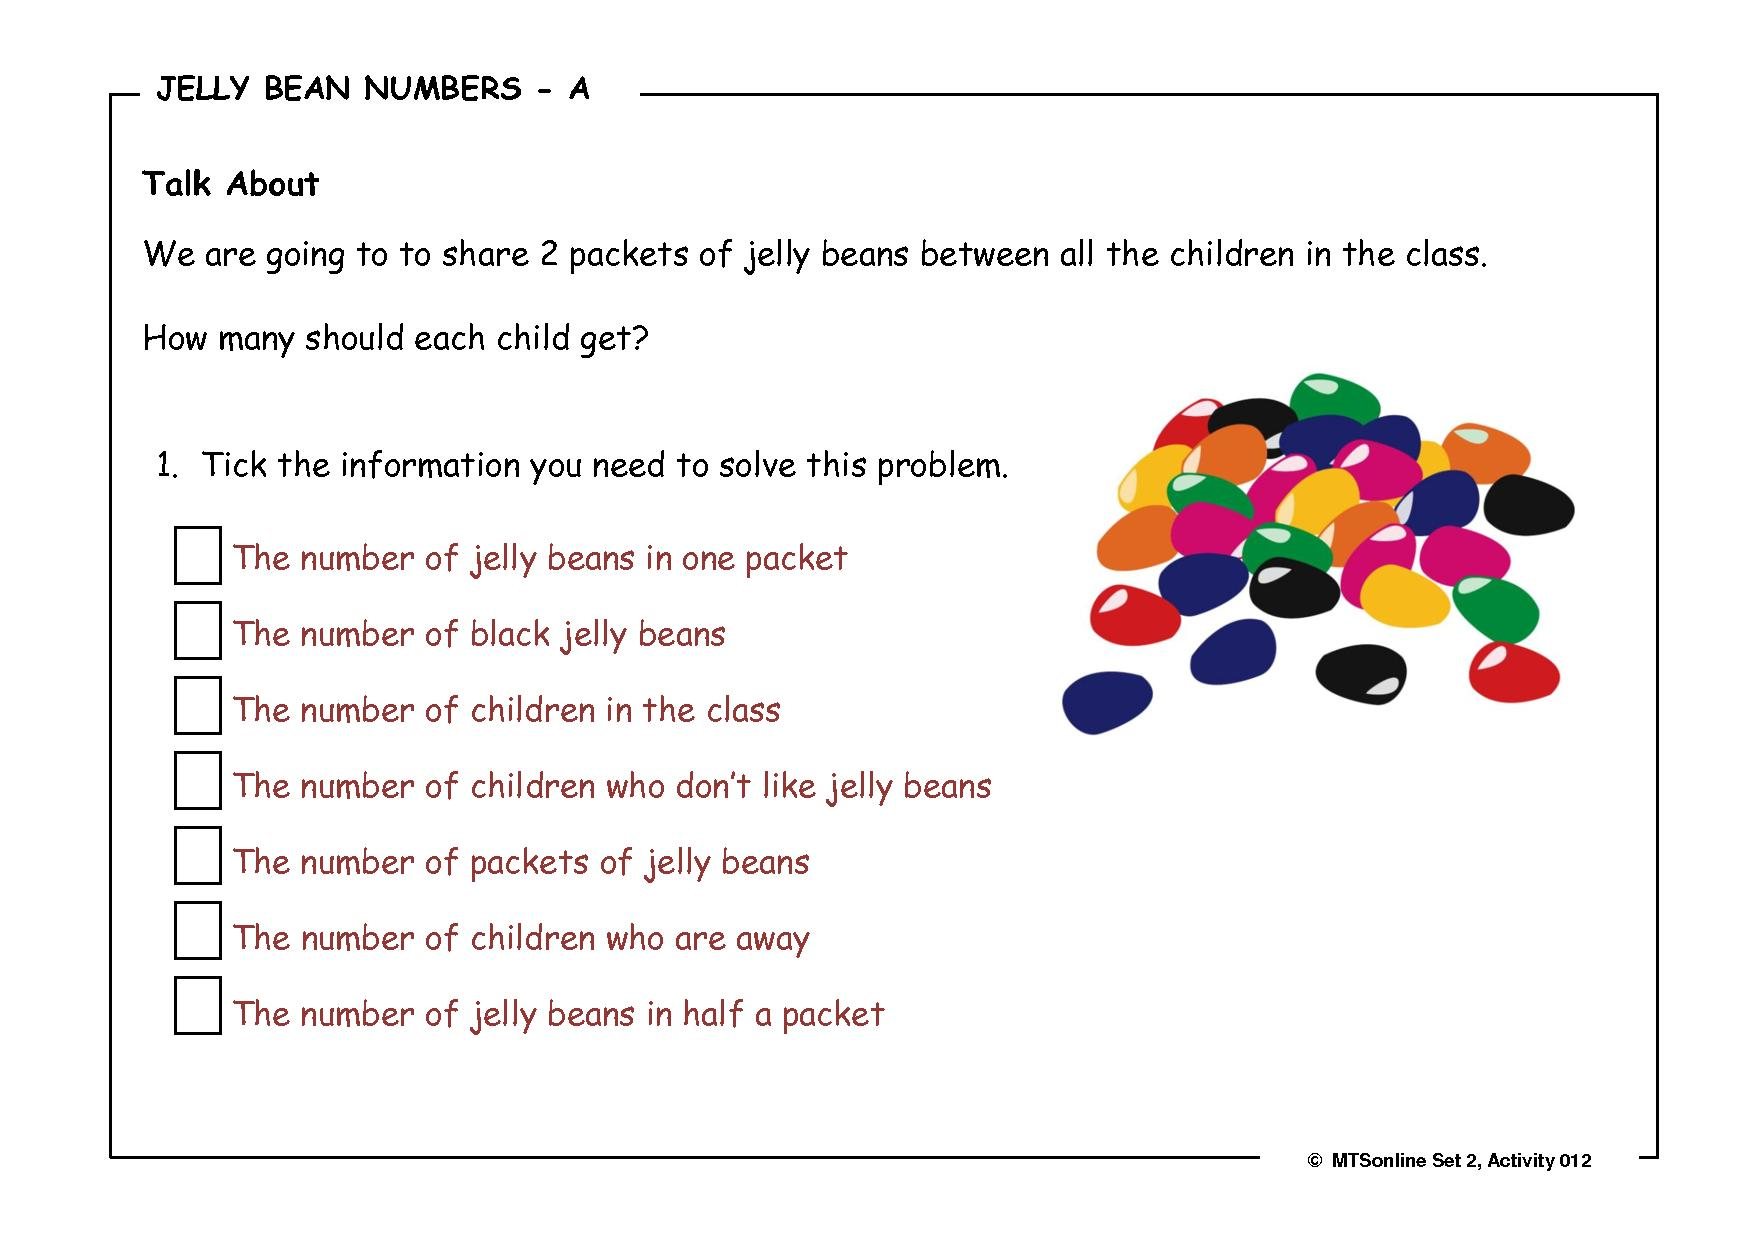 012jelly_bean_numbers0001